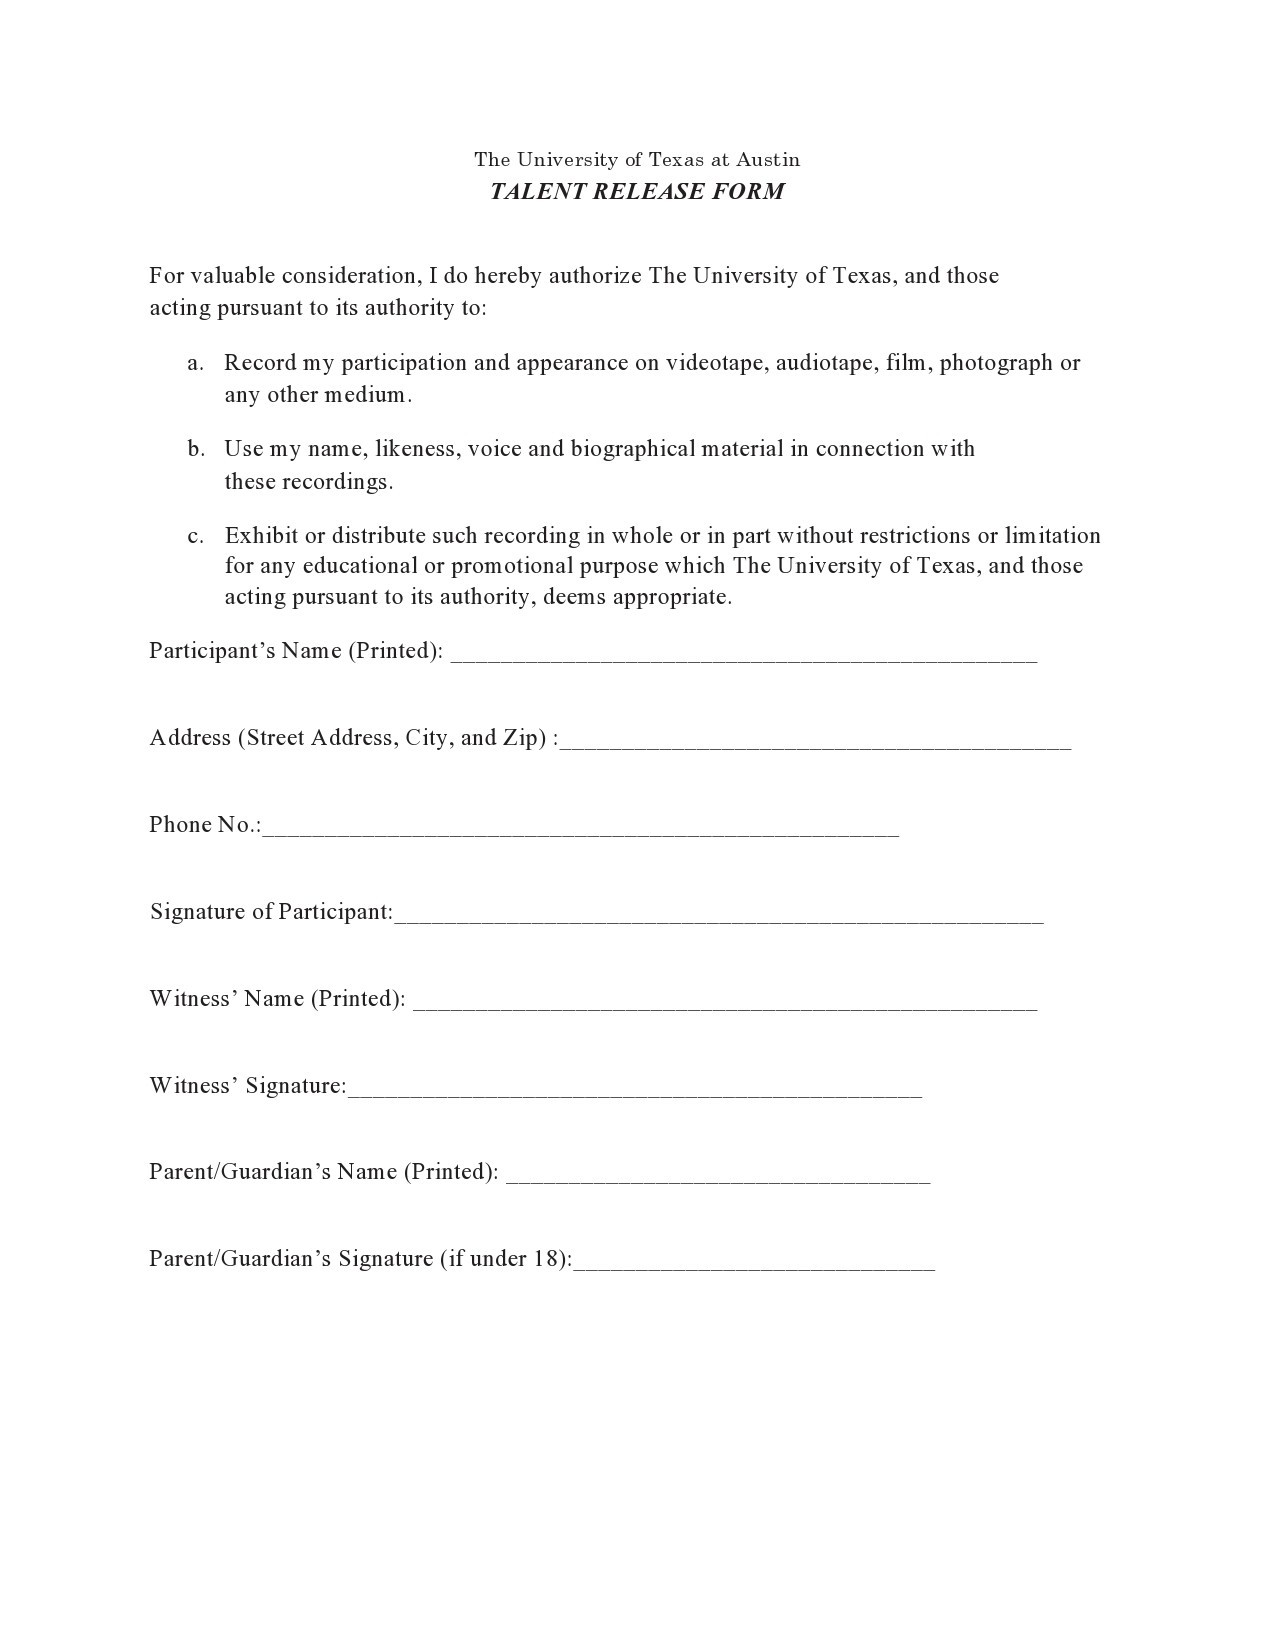 Free talent release form 39